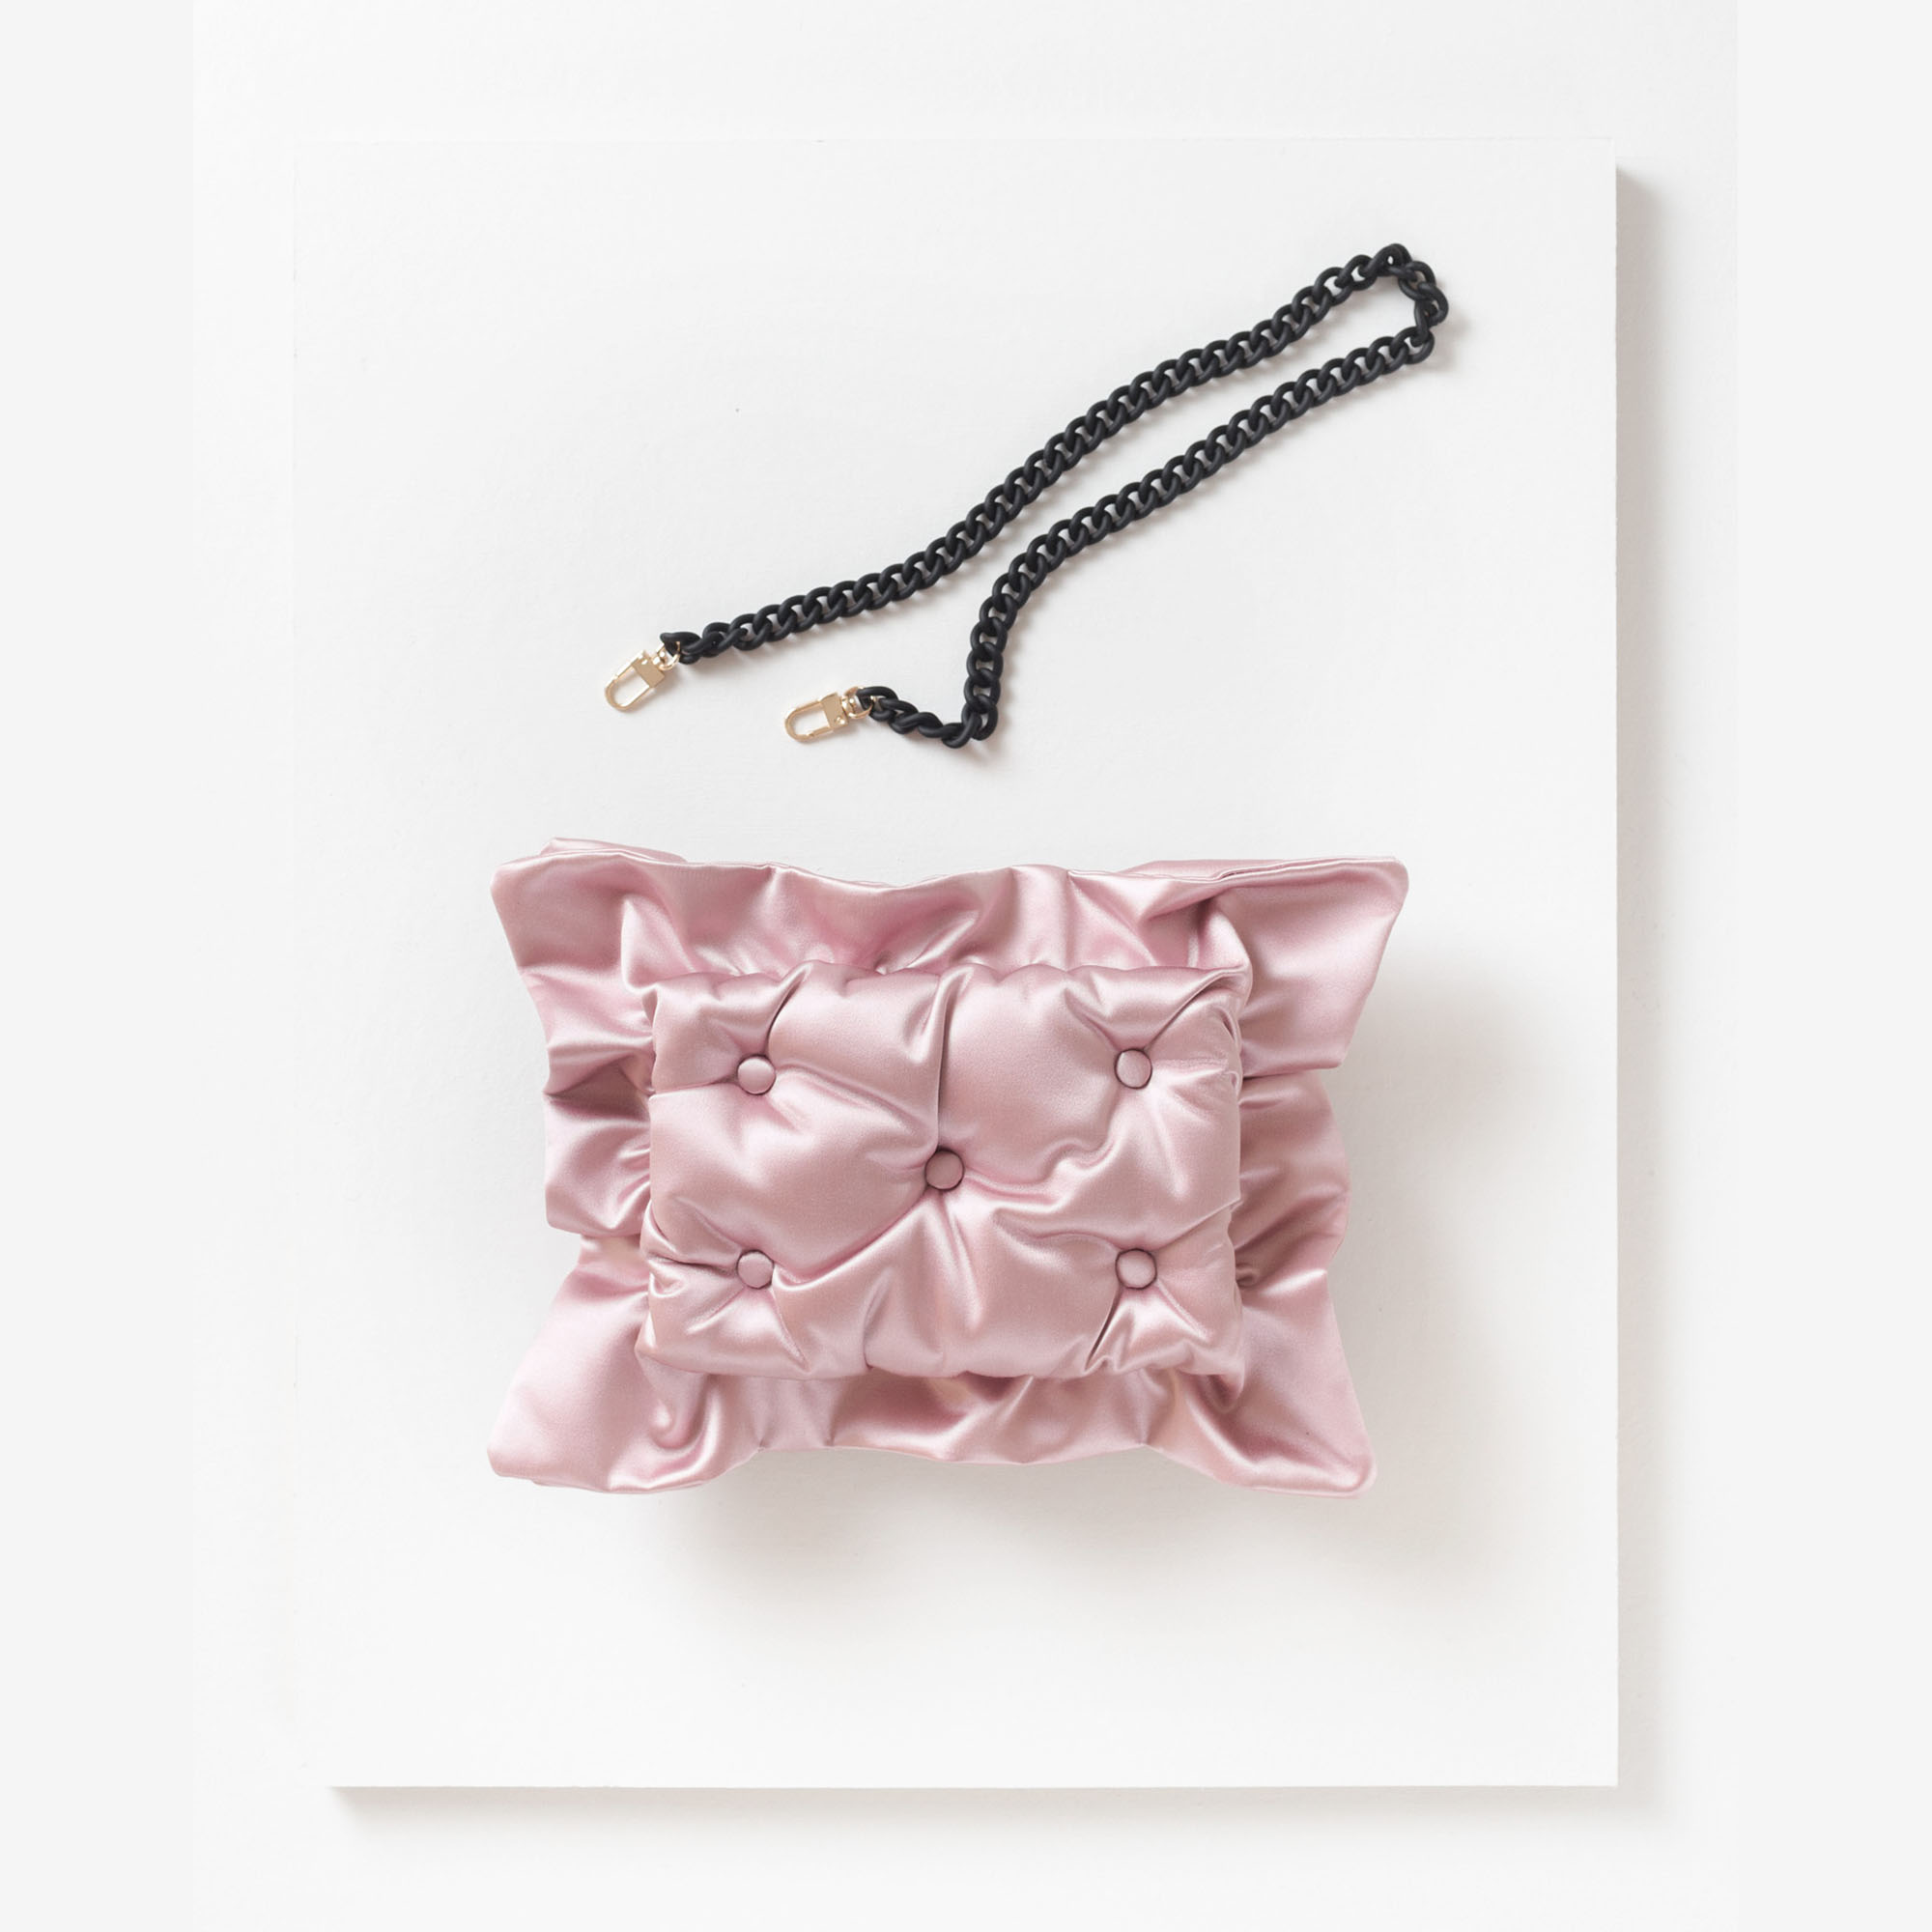 Laimushka pastel pink quilted silk pillow bag with chain strap